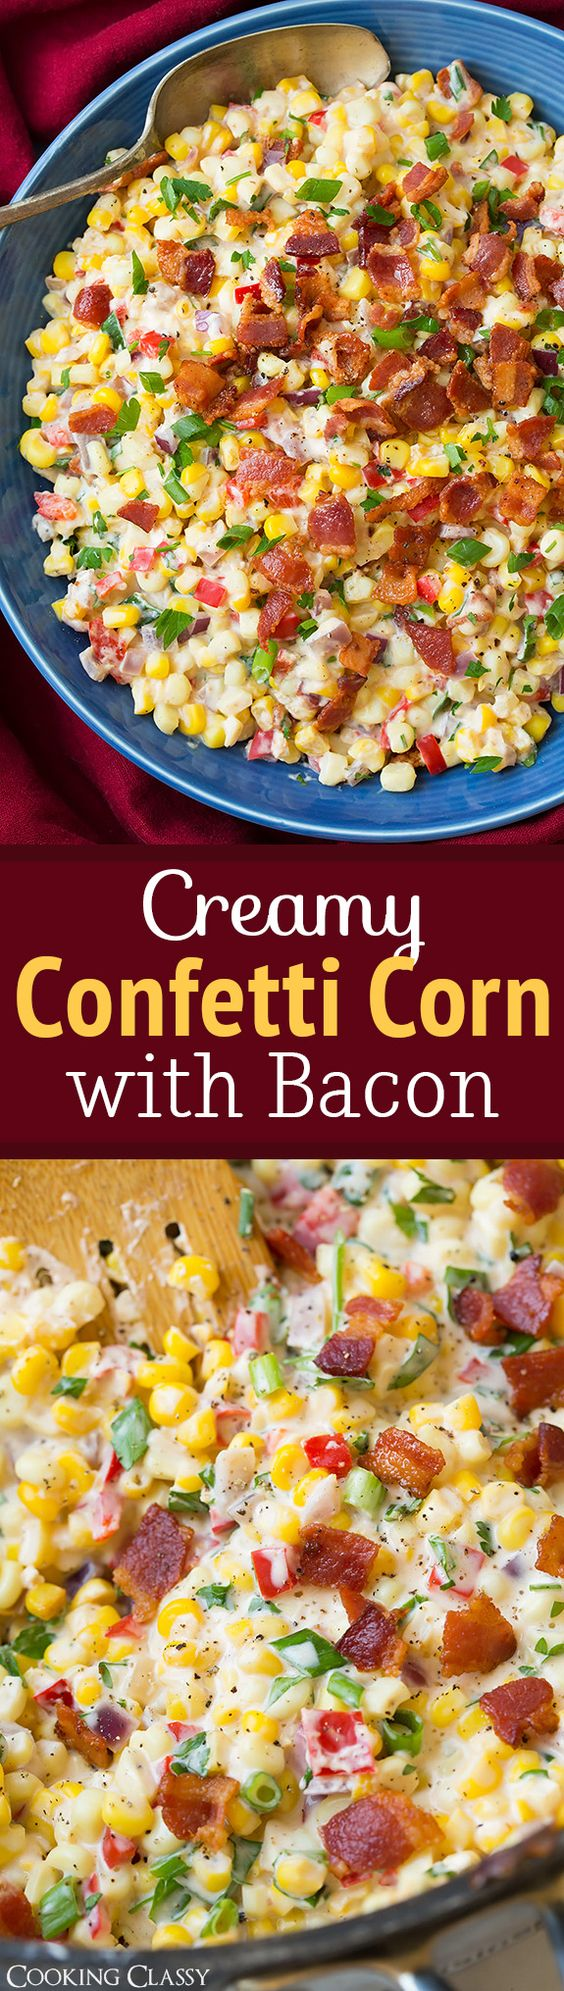 Creamy Confetti Corn with Bacon Vegetable Side Dish Recipe via Cooking Classy - the ultimate summer side dish! Seriously delicious!!